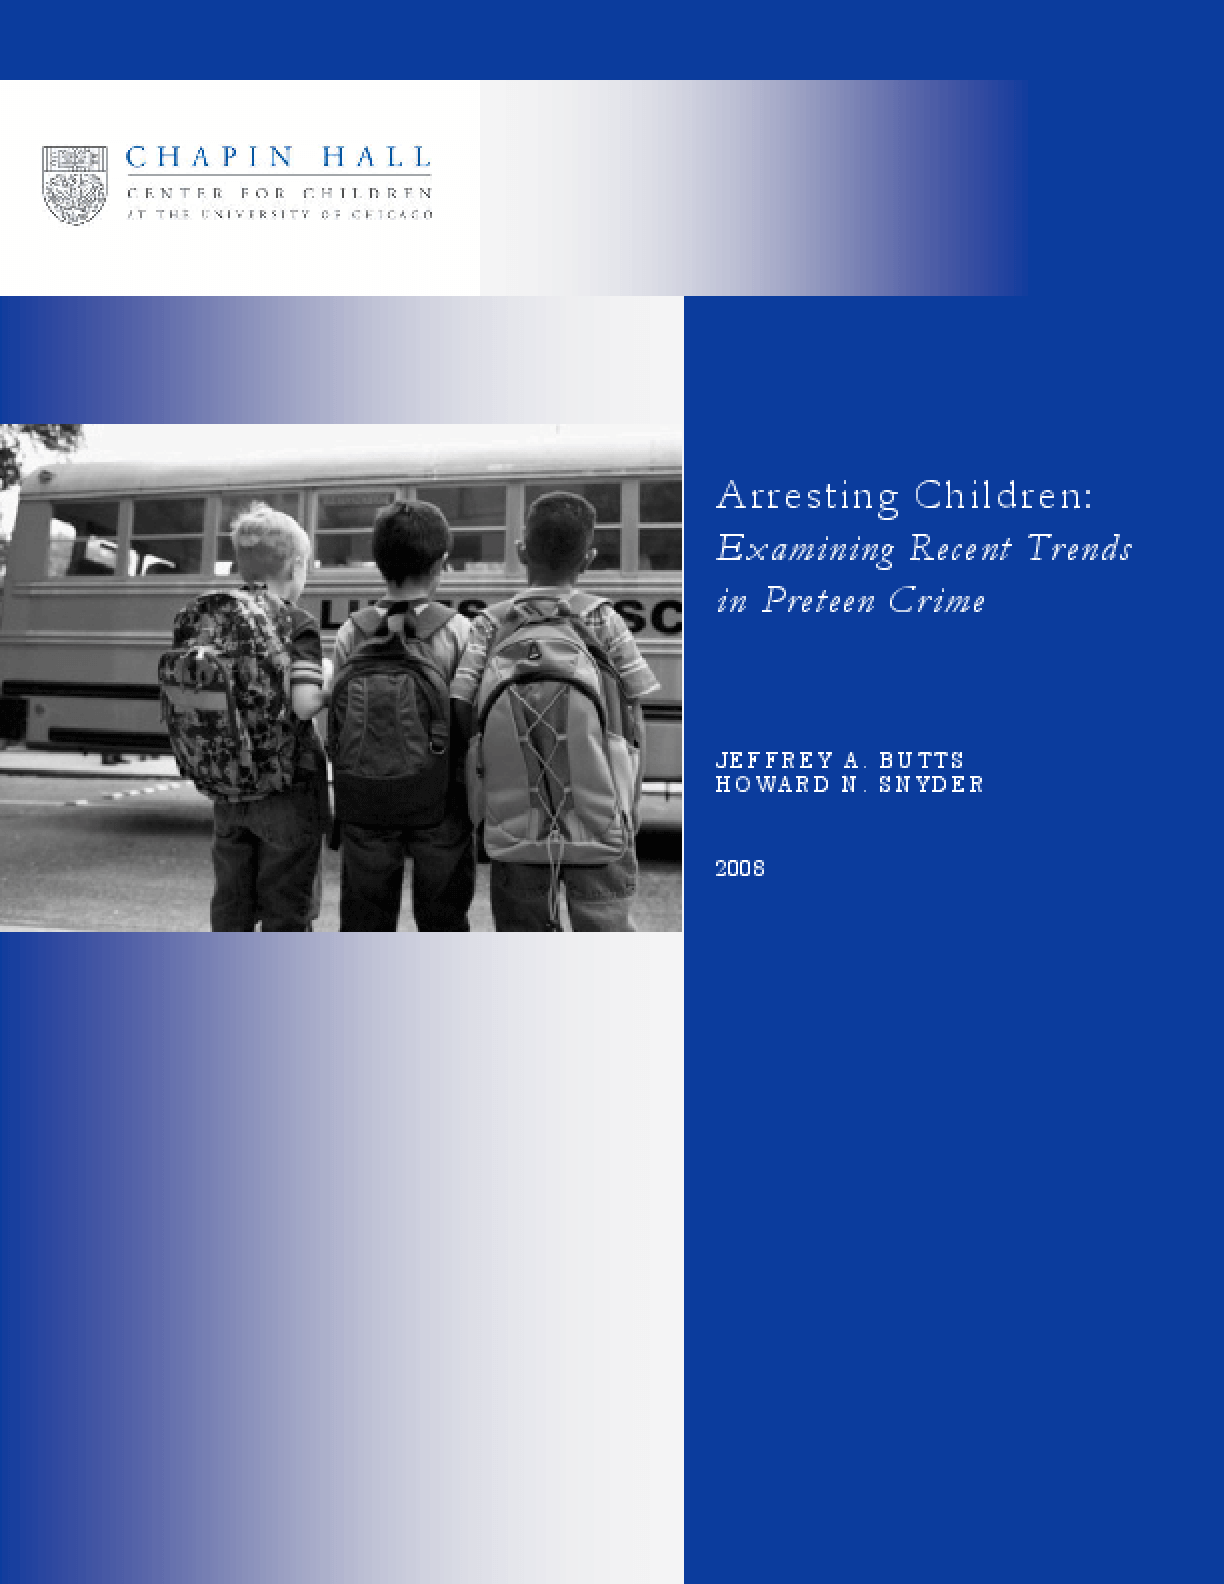 Arresting Children: Examining Recent Trends in Preteen Crime